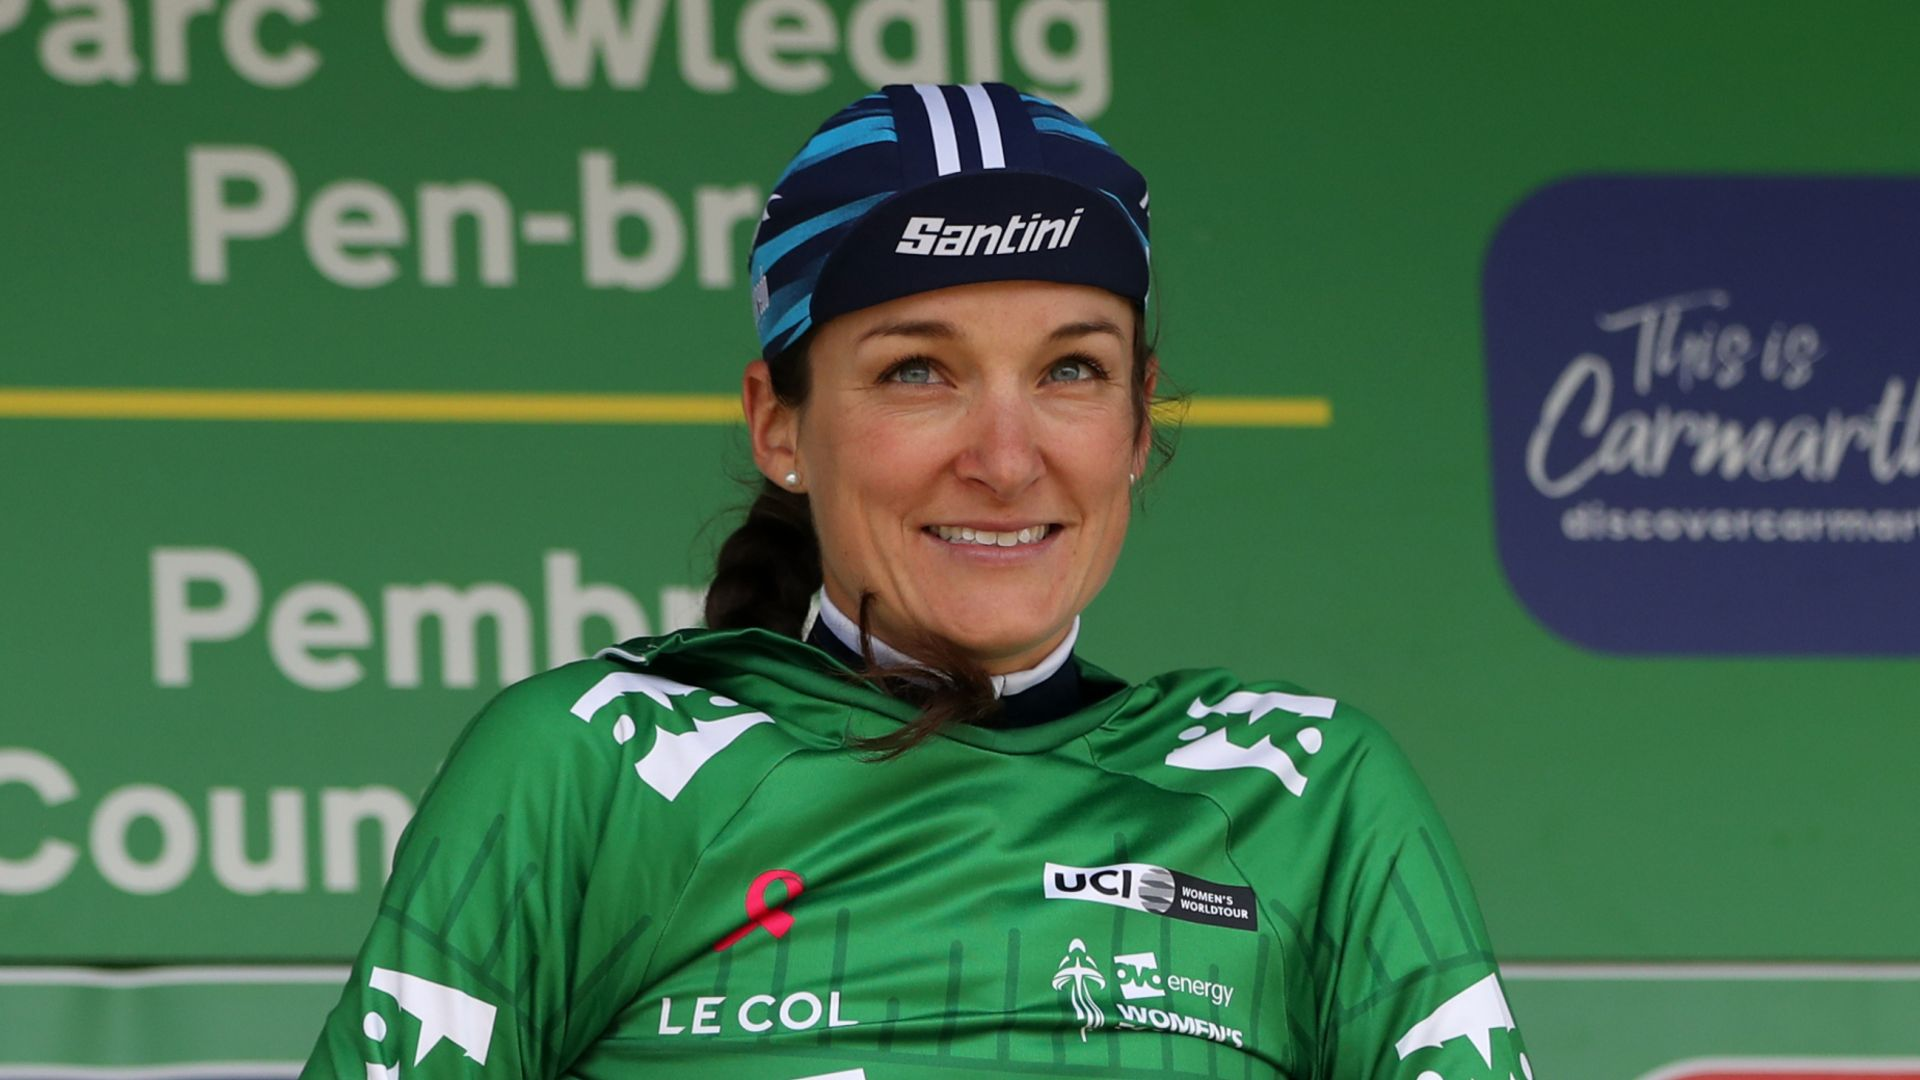 Deignan: Quality of women's cycling keeps me motivated